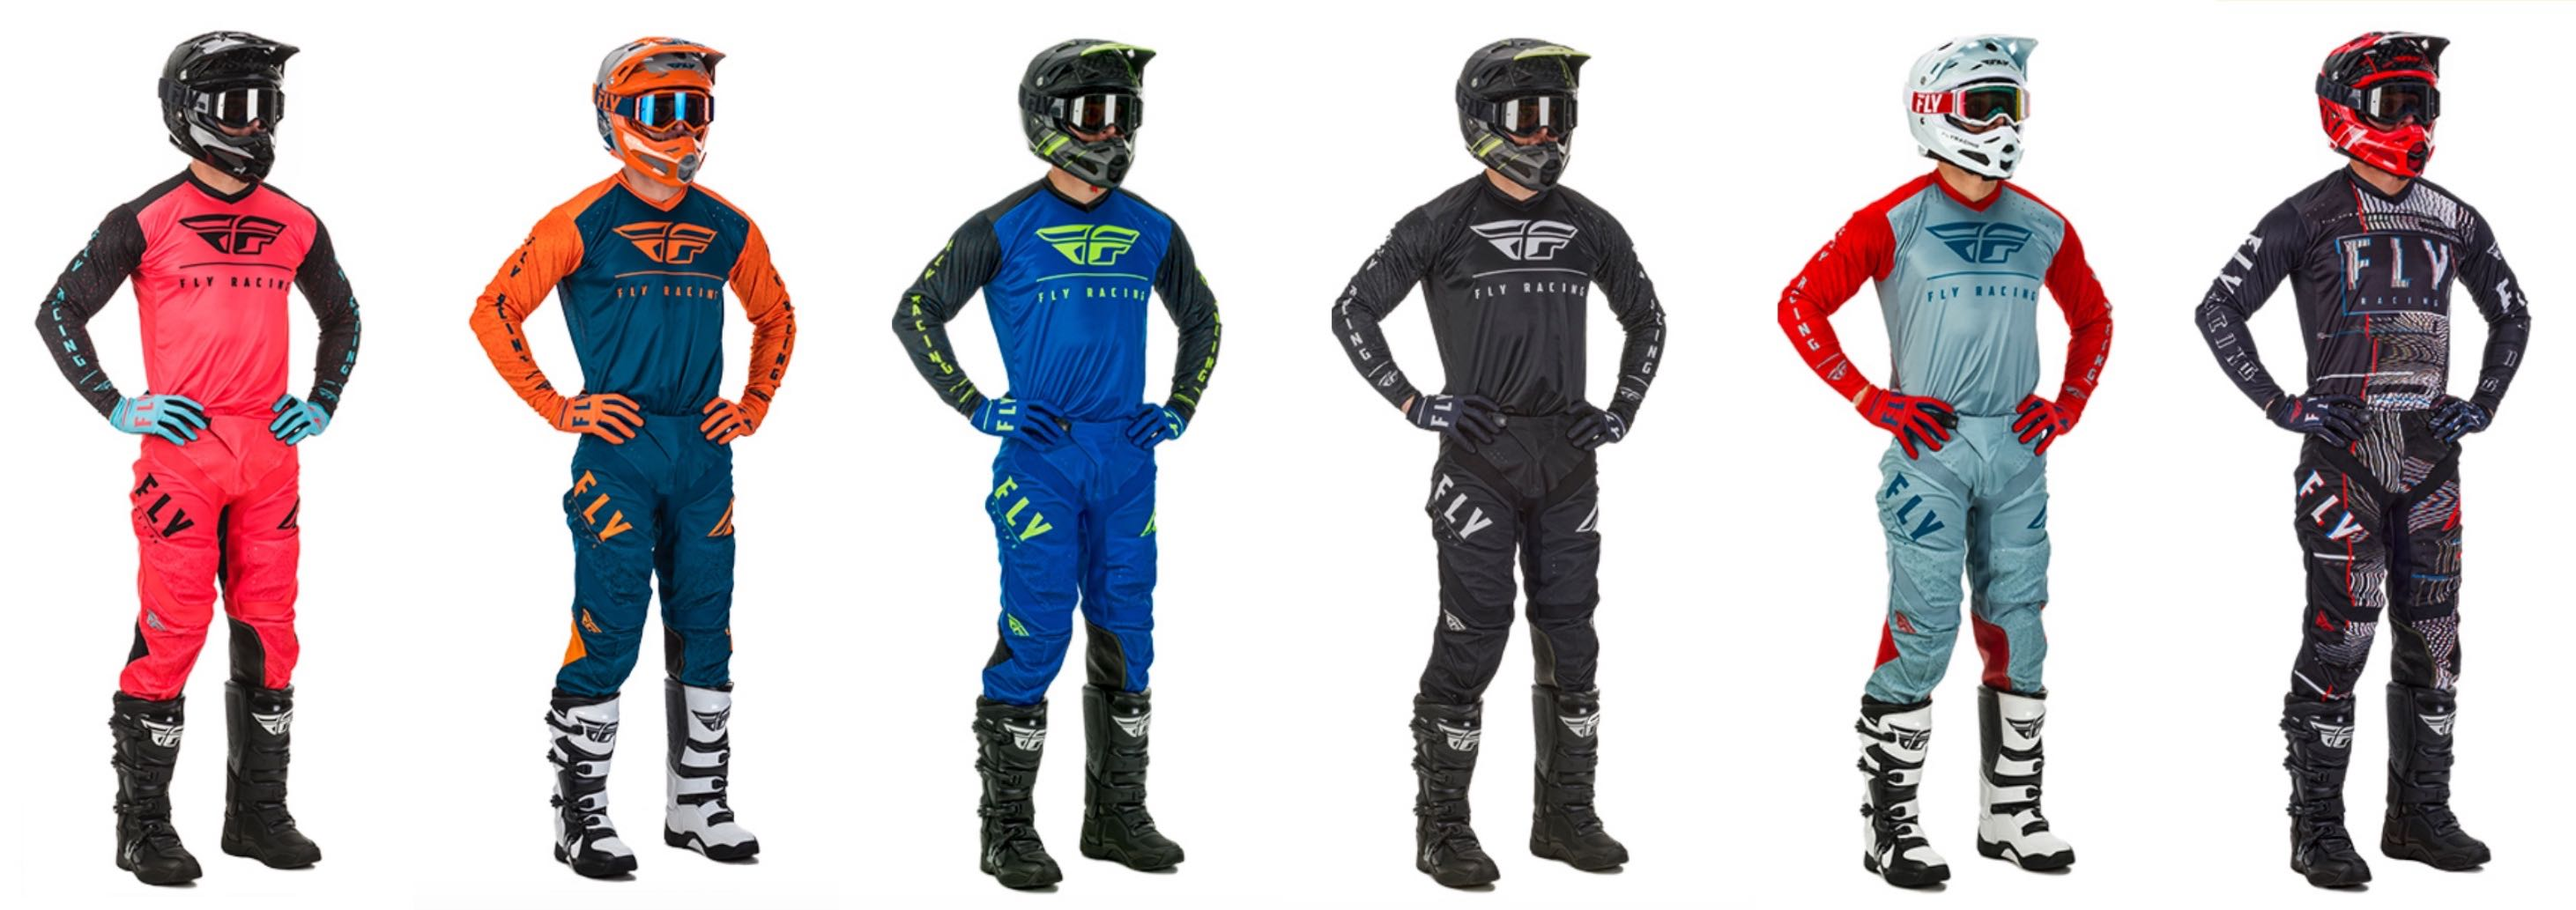 2020 Fly Lite Motocross Racewear available in the following colour-ways